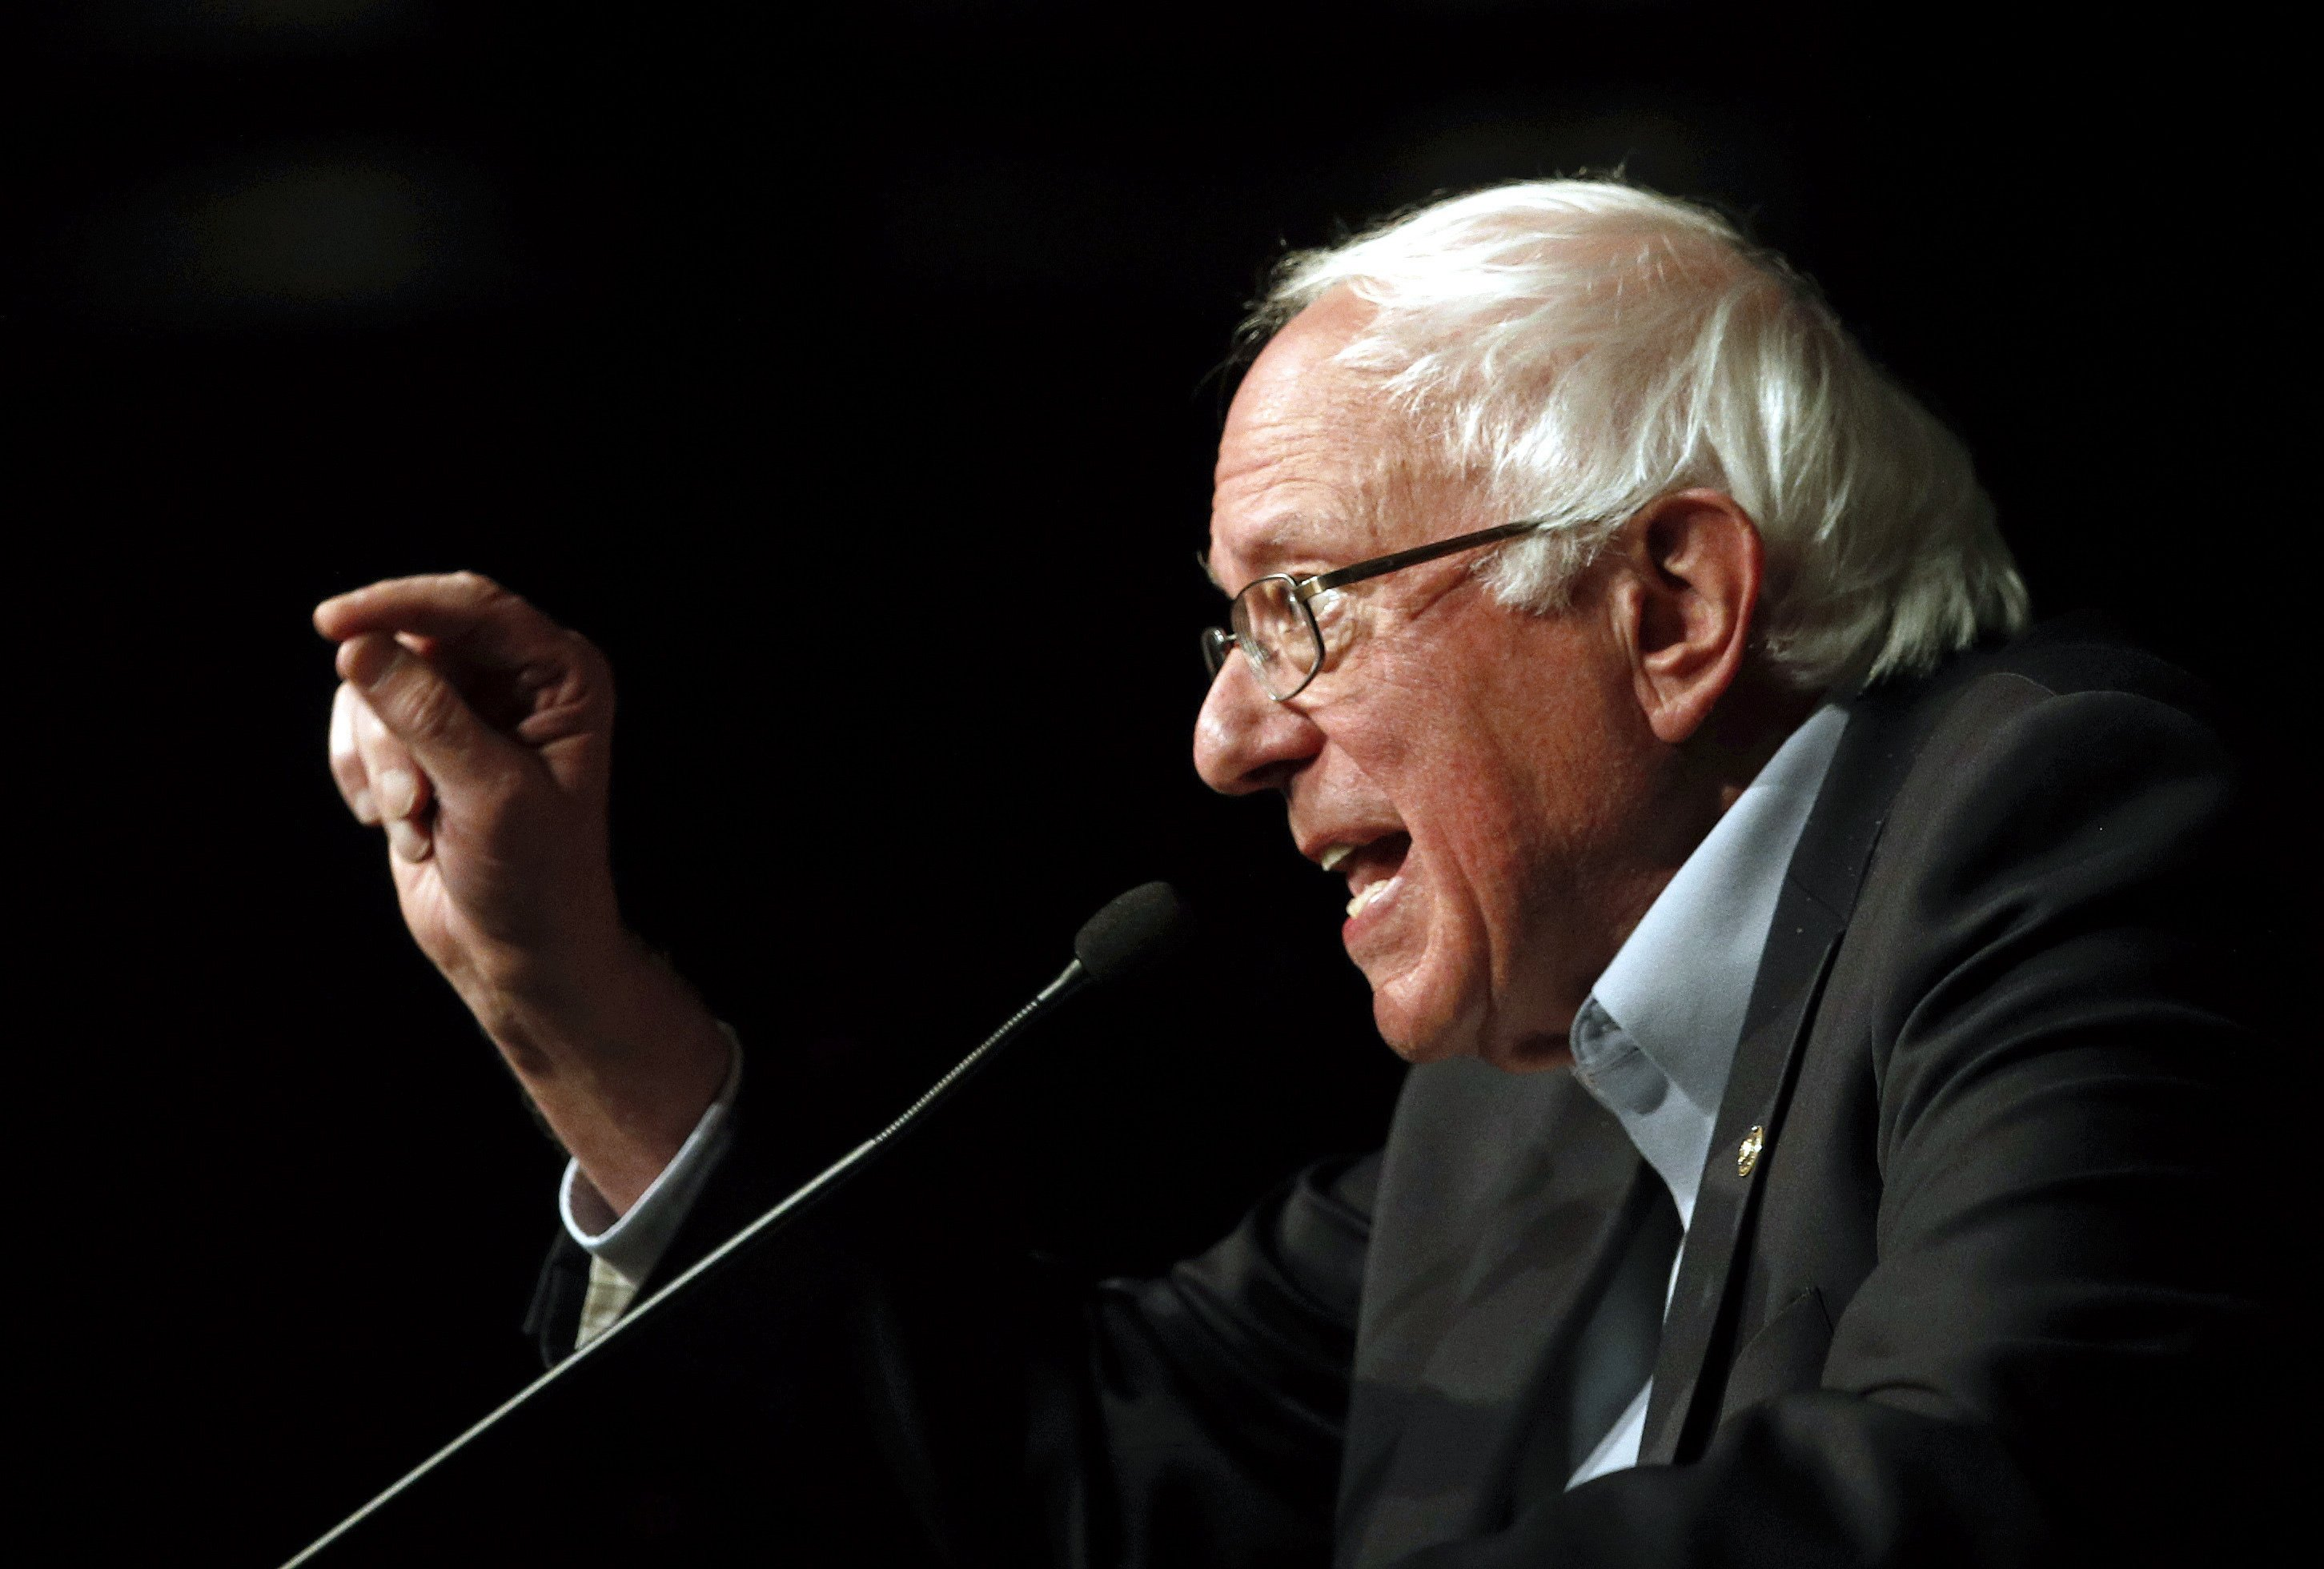 Analysis: Sanders may not need 2016 magic to be 2020 force